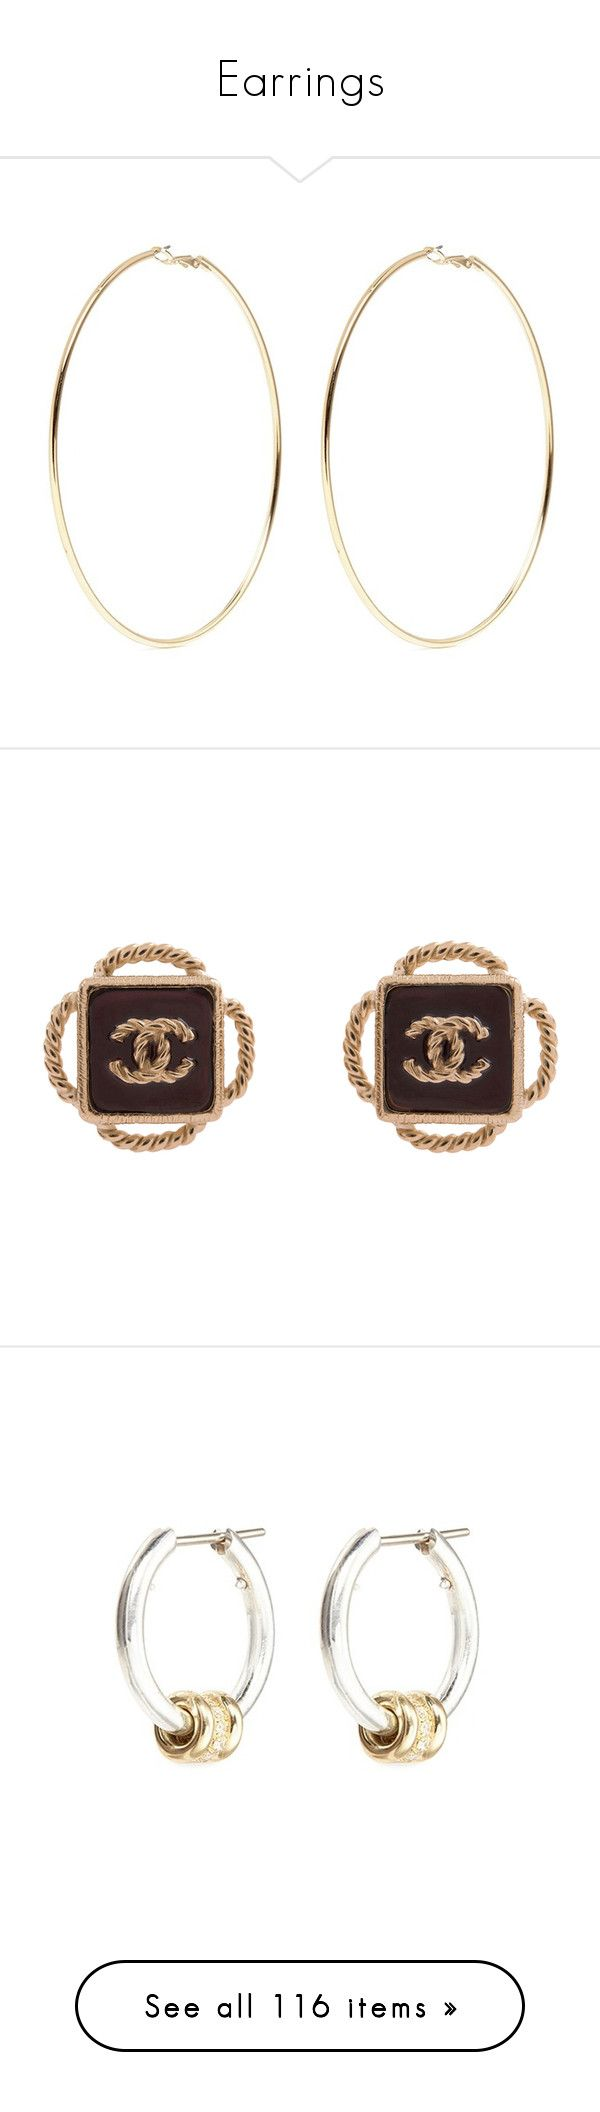 """""""Earrings"""" by oh-aurora ❤ liked on Polyvore featuring jewelry, earrings, accessories, metallic, gold plated hoop earrings, kenneth jay lane earrings, kenneth jay lane jewelry, gold plated jewelry, hoop earrings and red"""